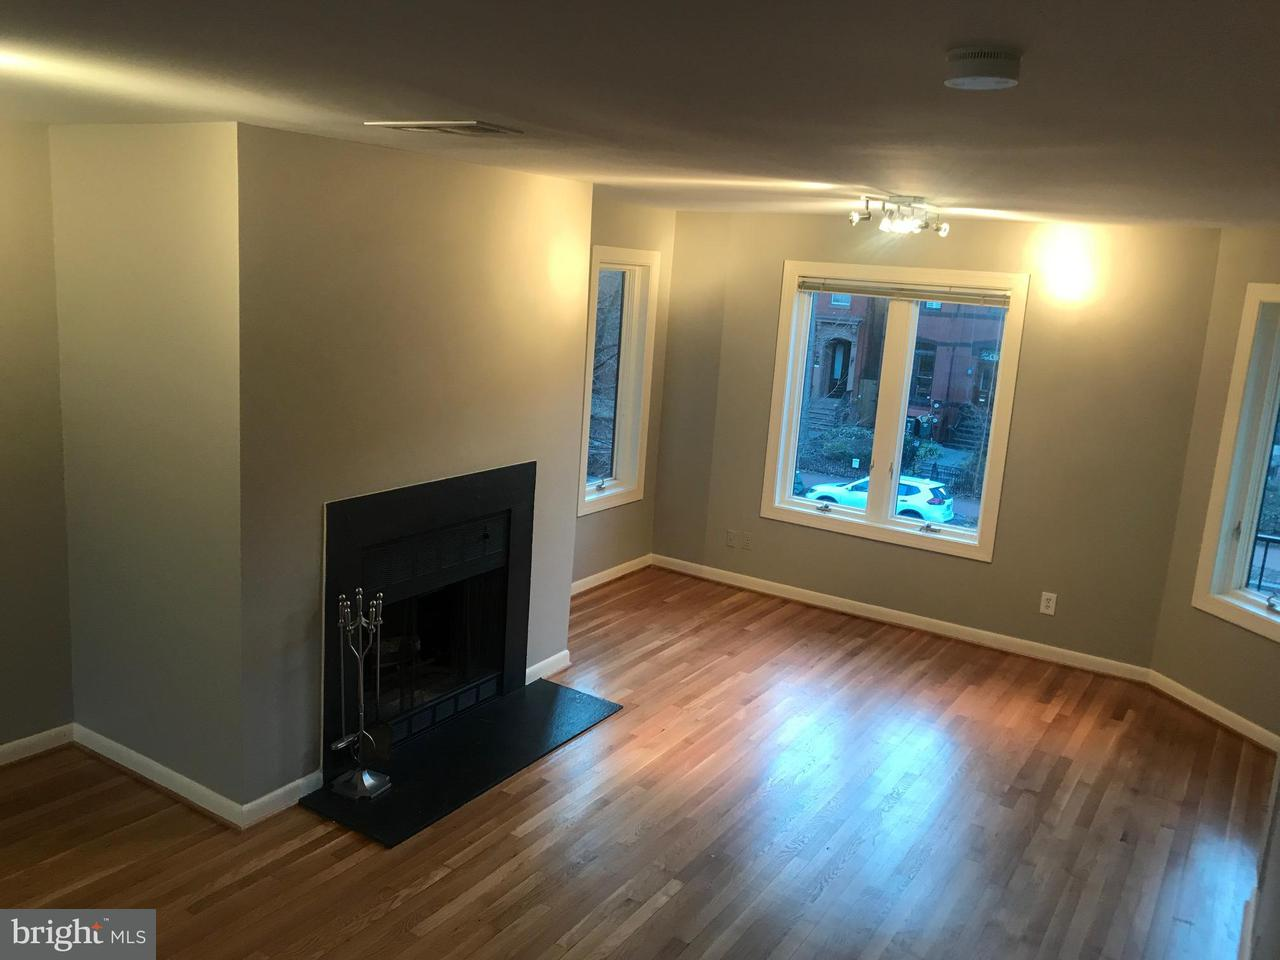 Condominium for Rent at 1313 Vermont Ave NW #22 Washington, District Of Columbia 20005 United States